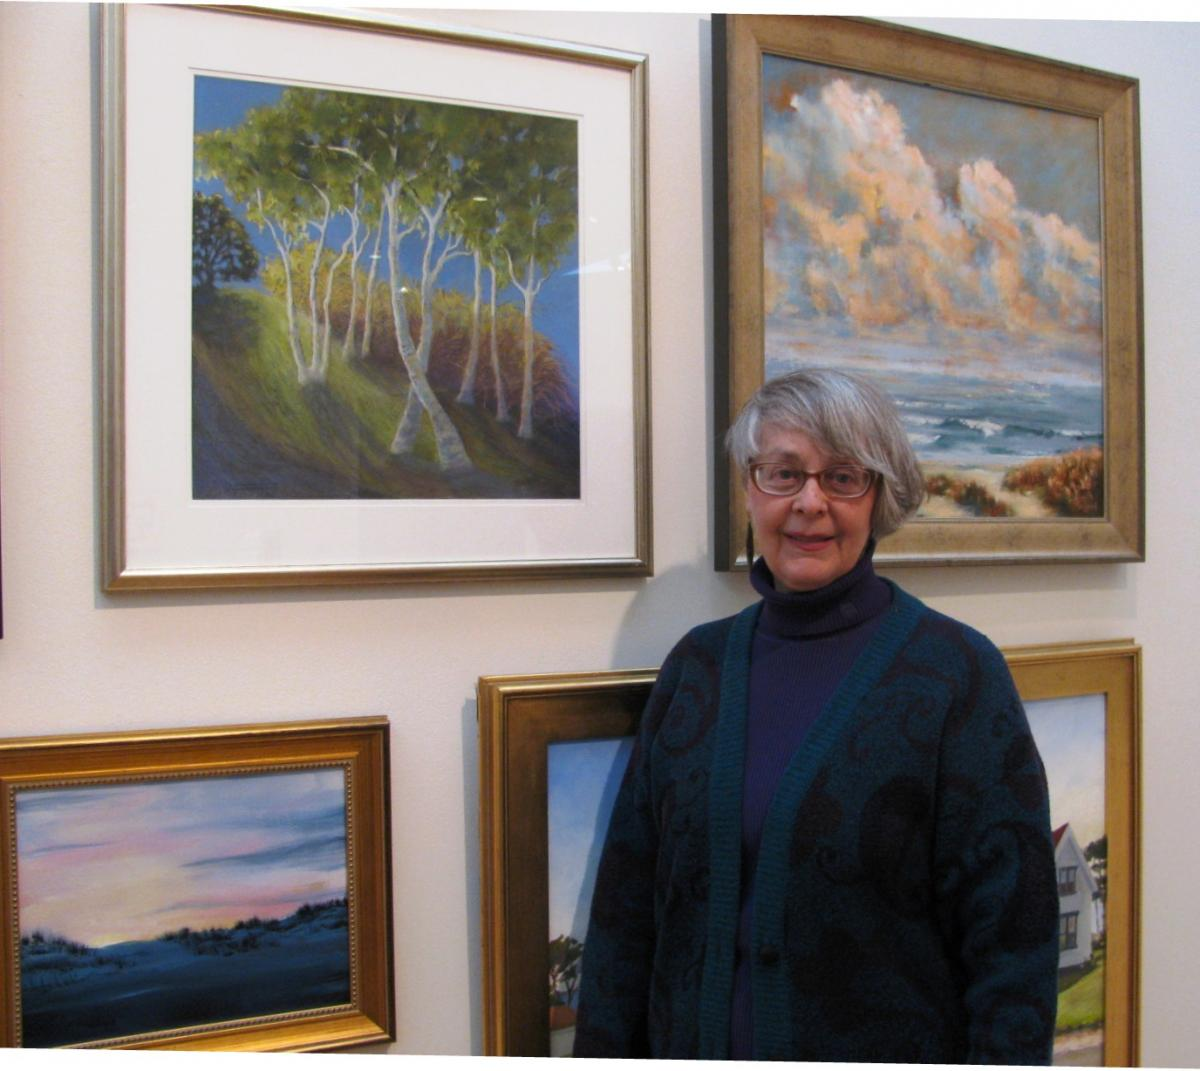 Sybil with her painting at NBMA